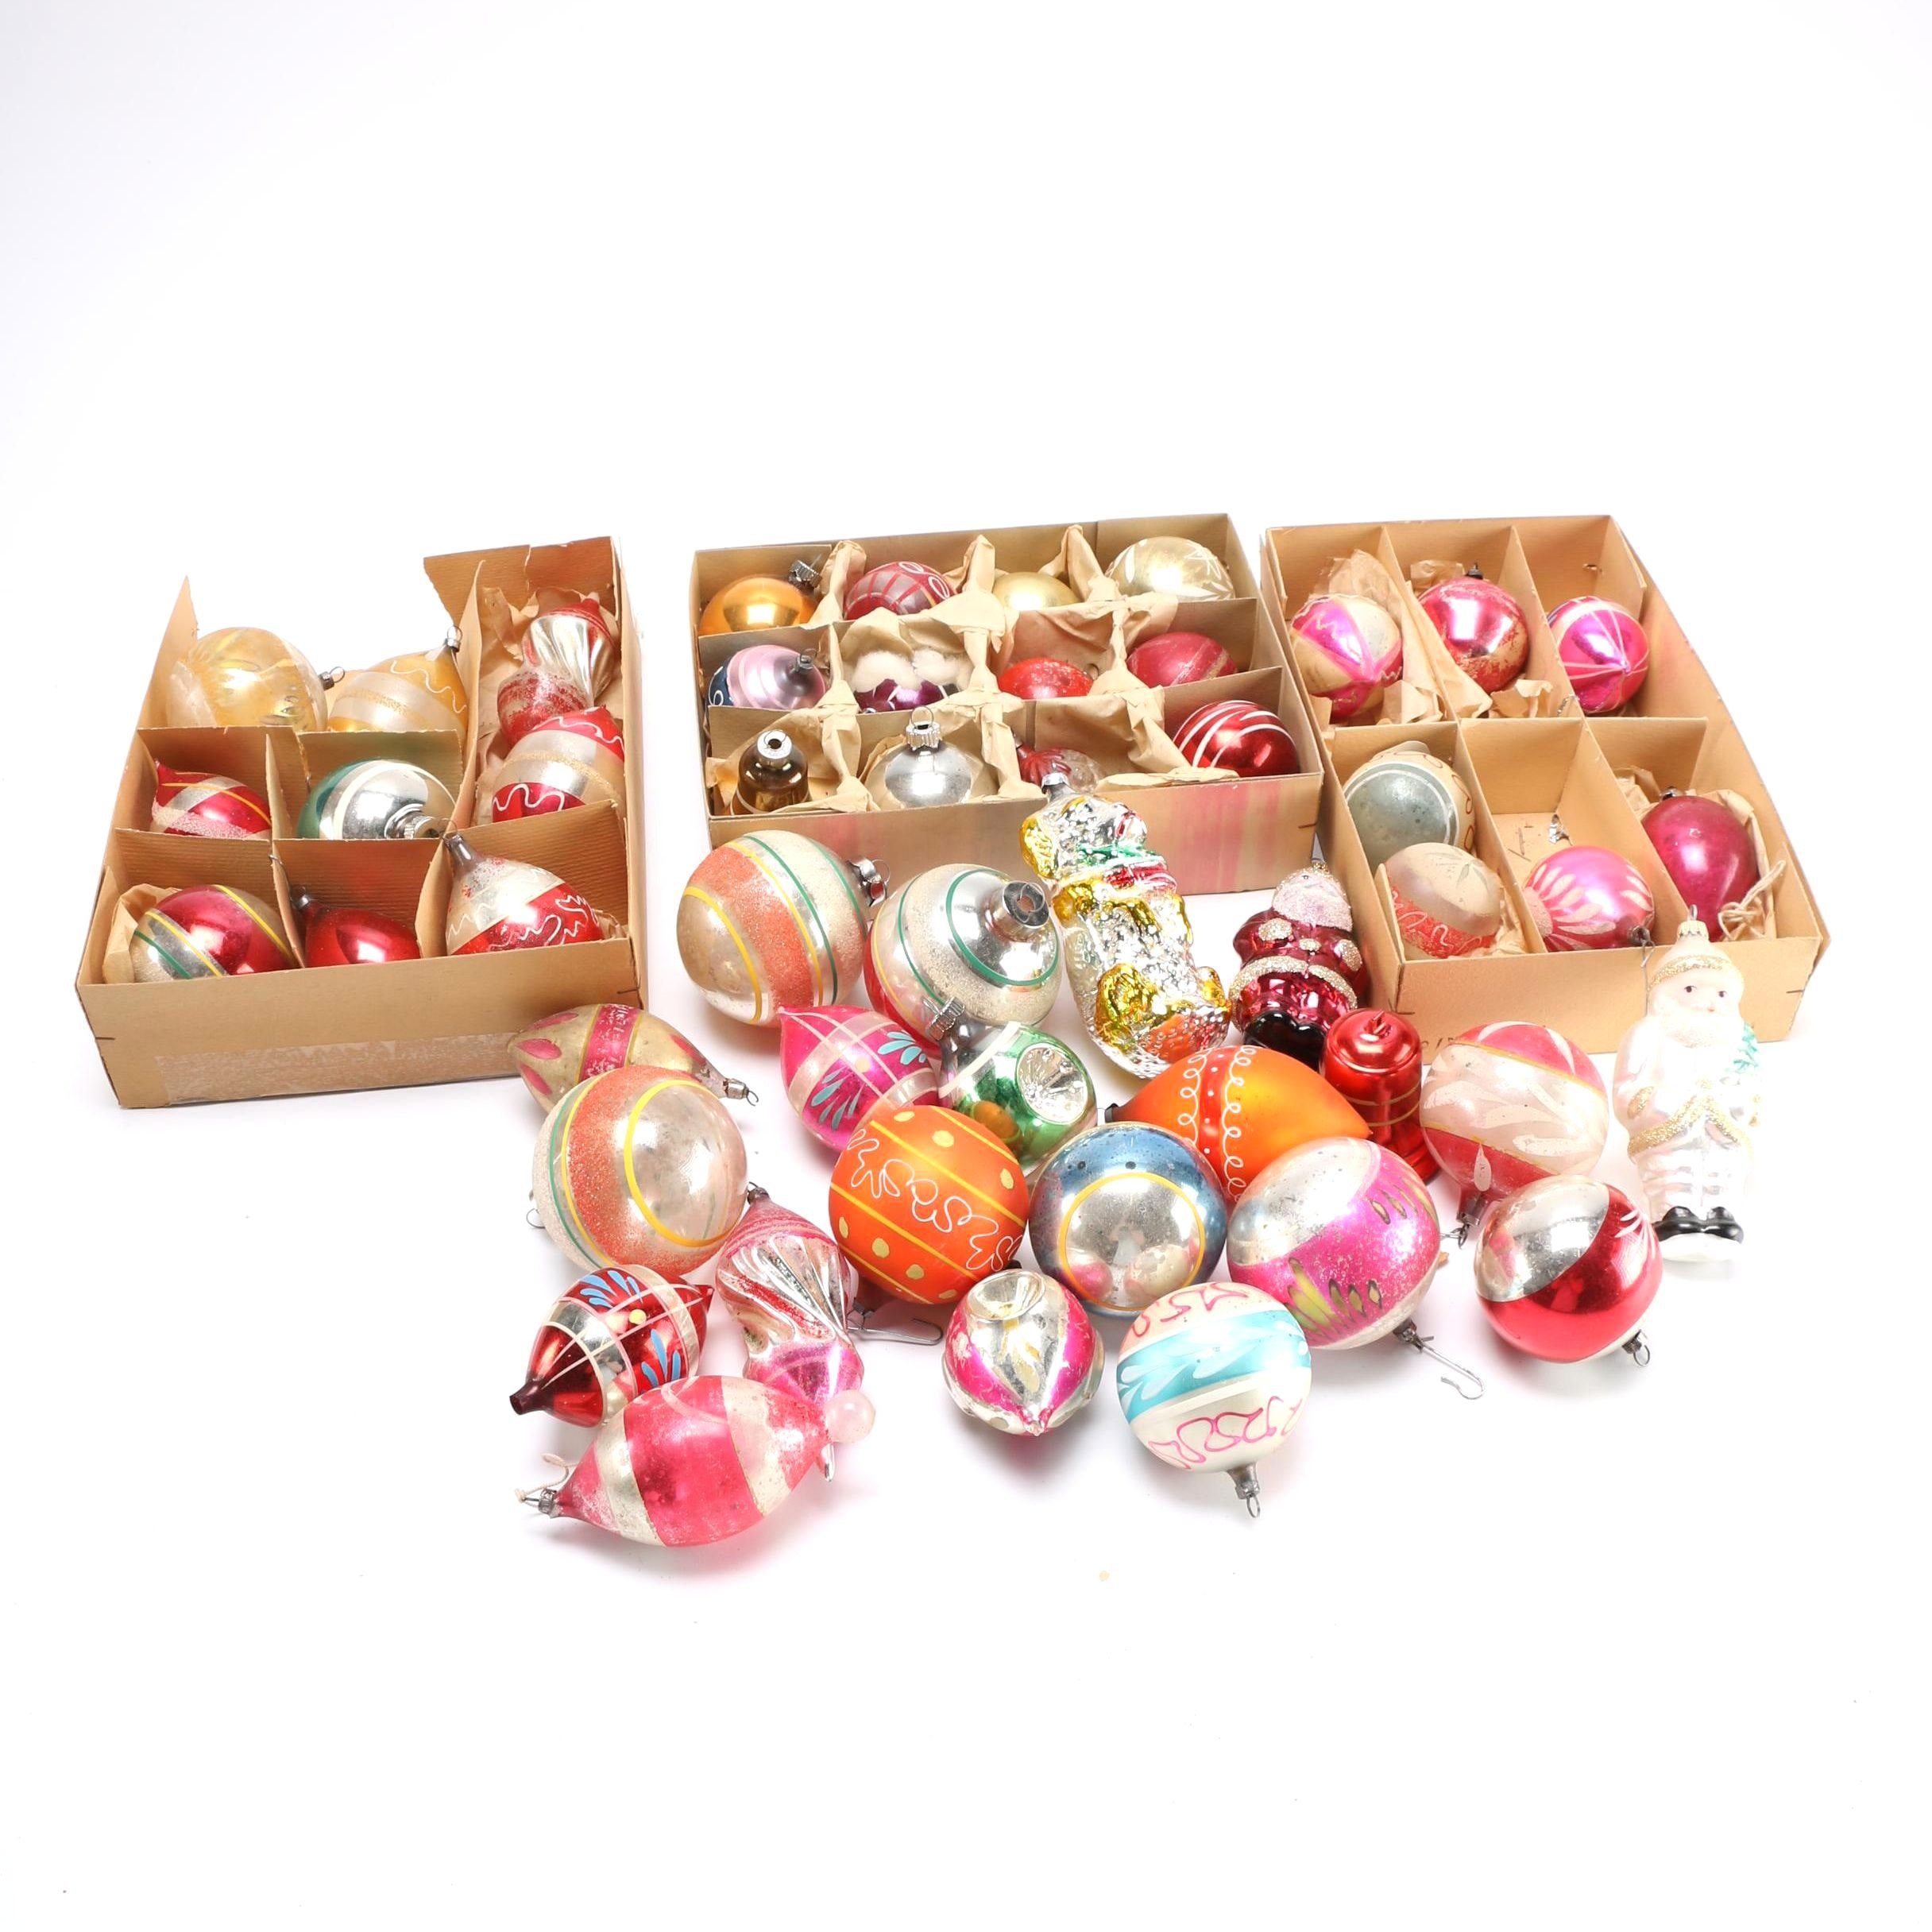 Vintage Glass and Plastic Christmas Tree Ornaments